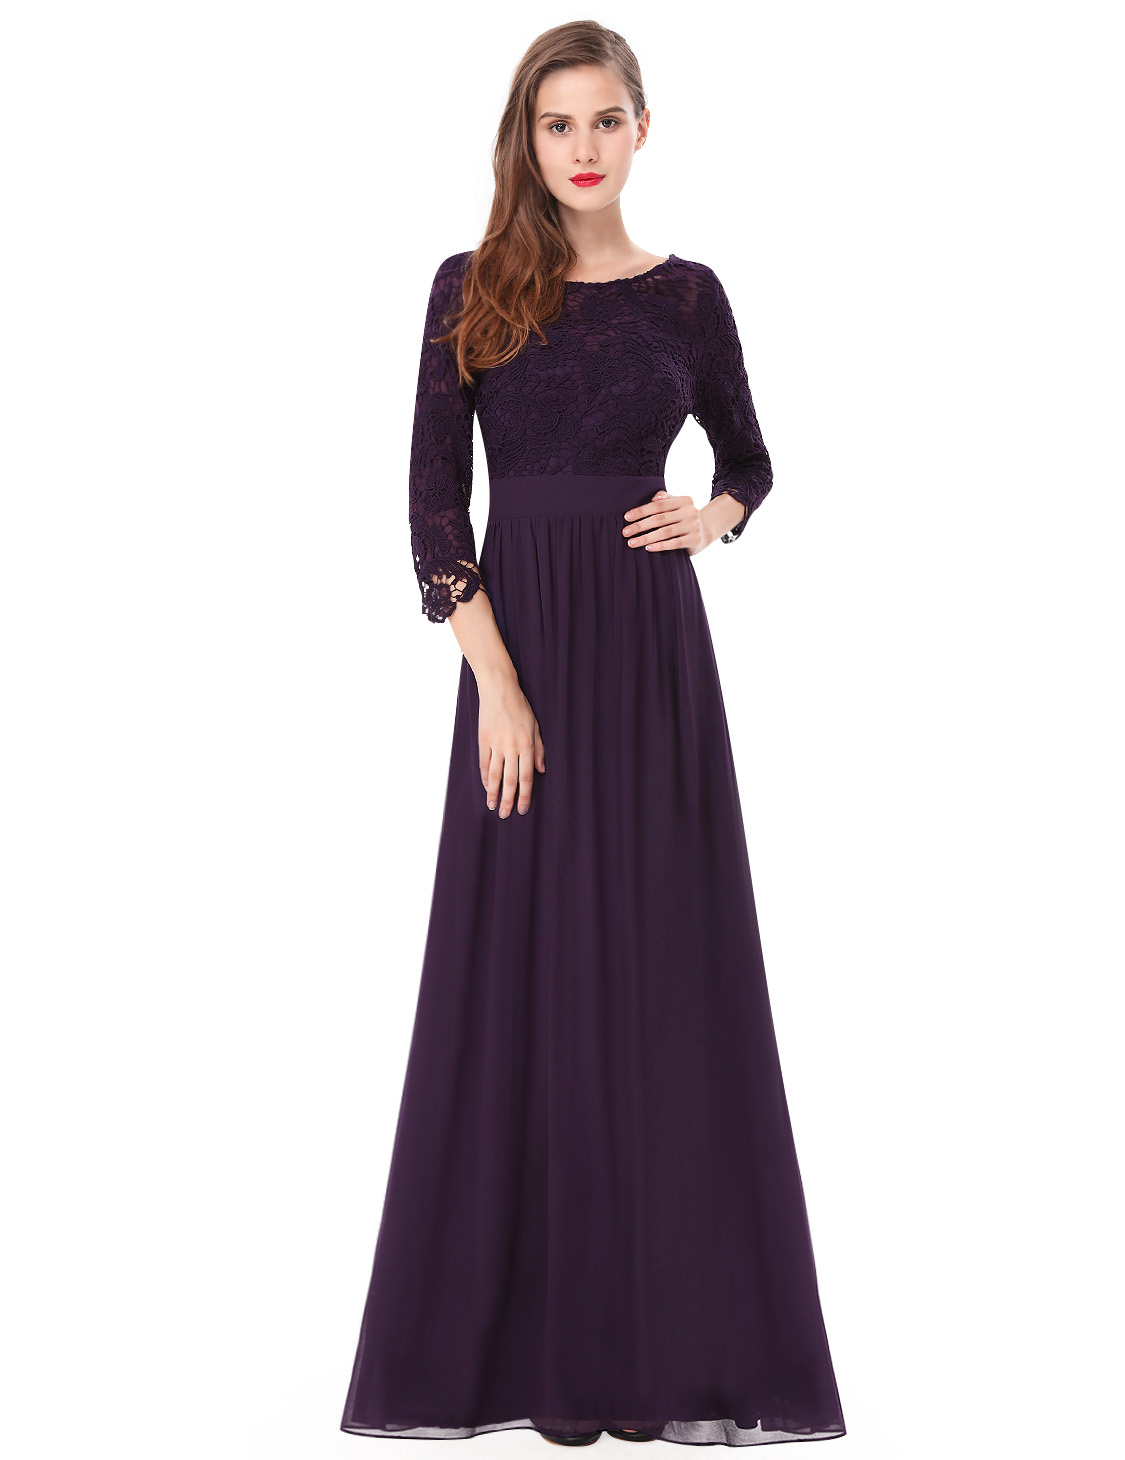 Ever-Pretty Formal Evening Bridesmaid Dresses Long Sleeve Party Prom ...